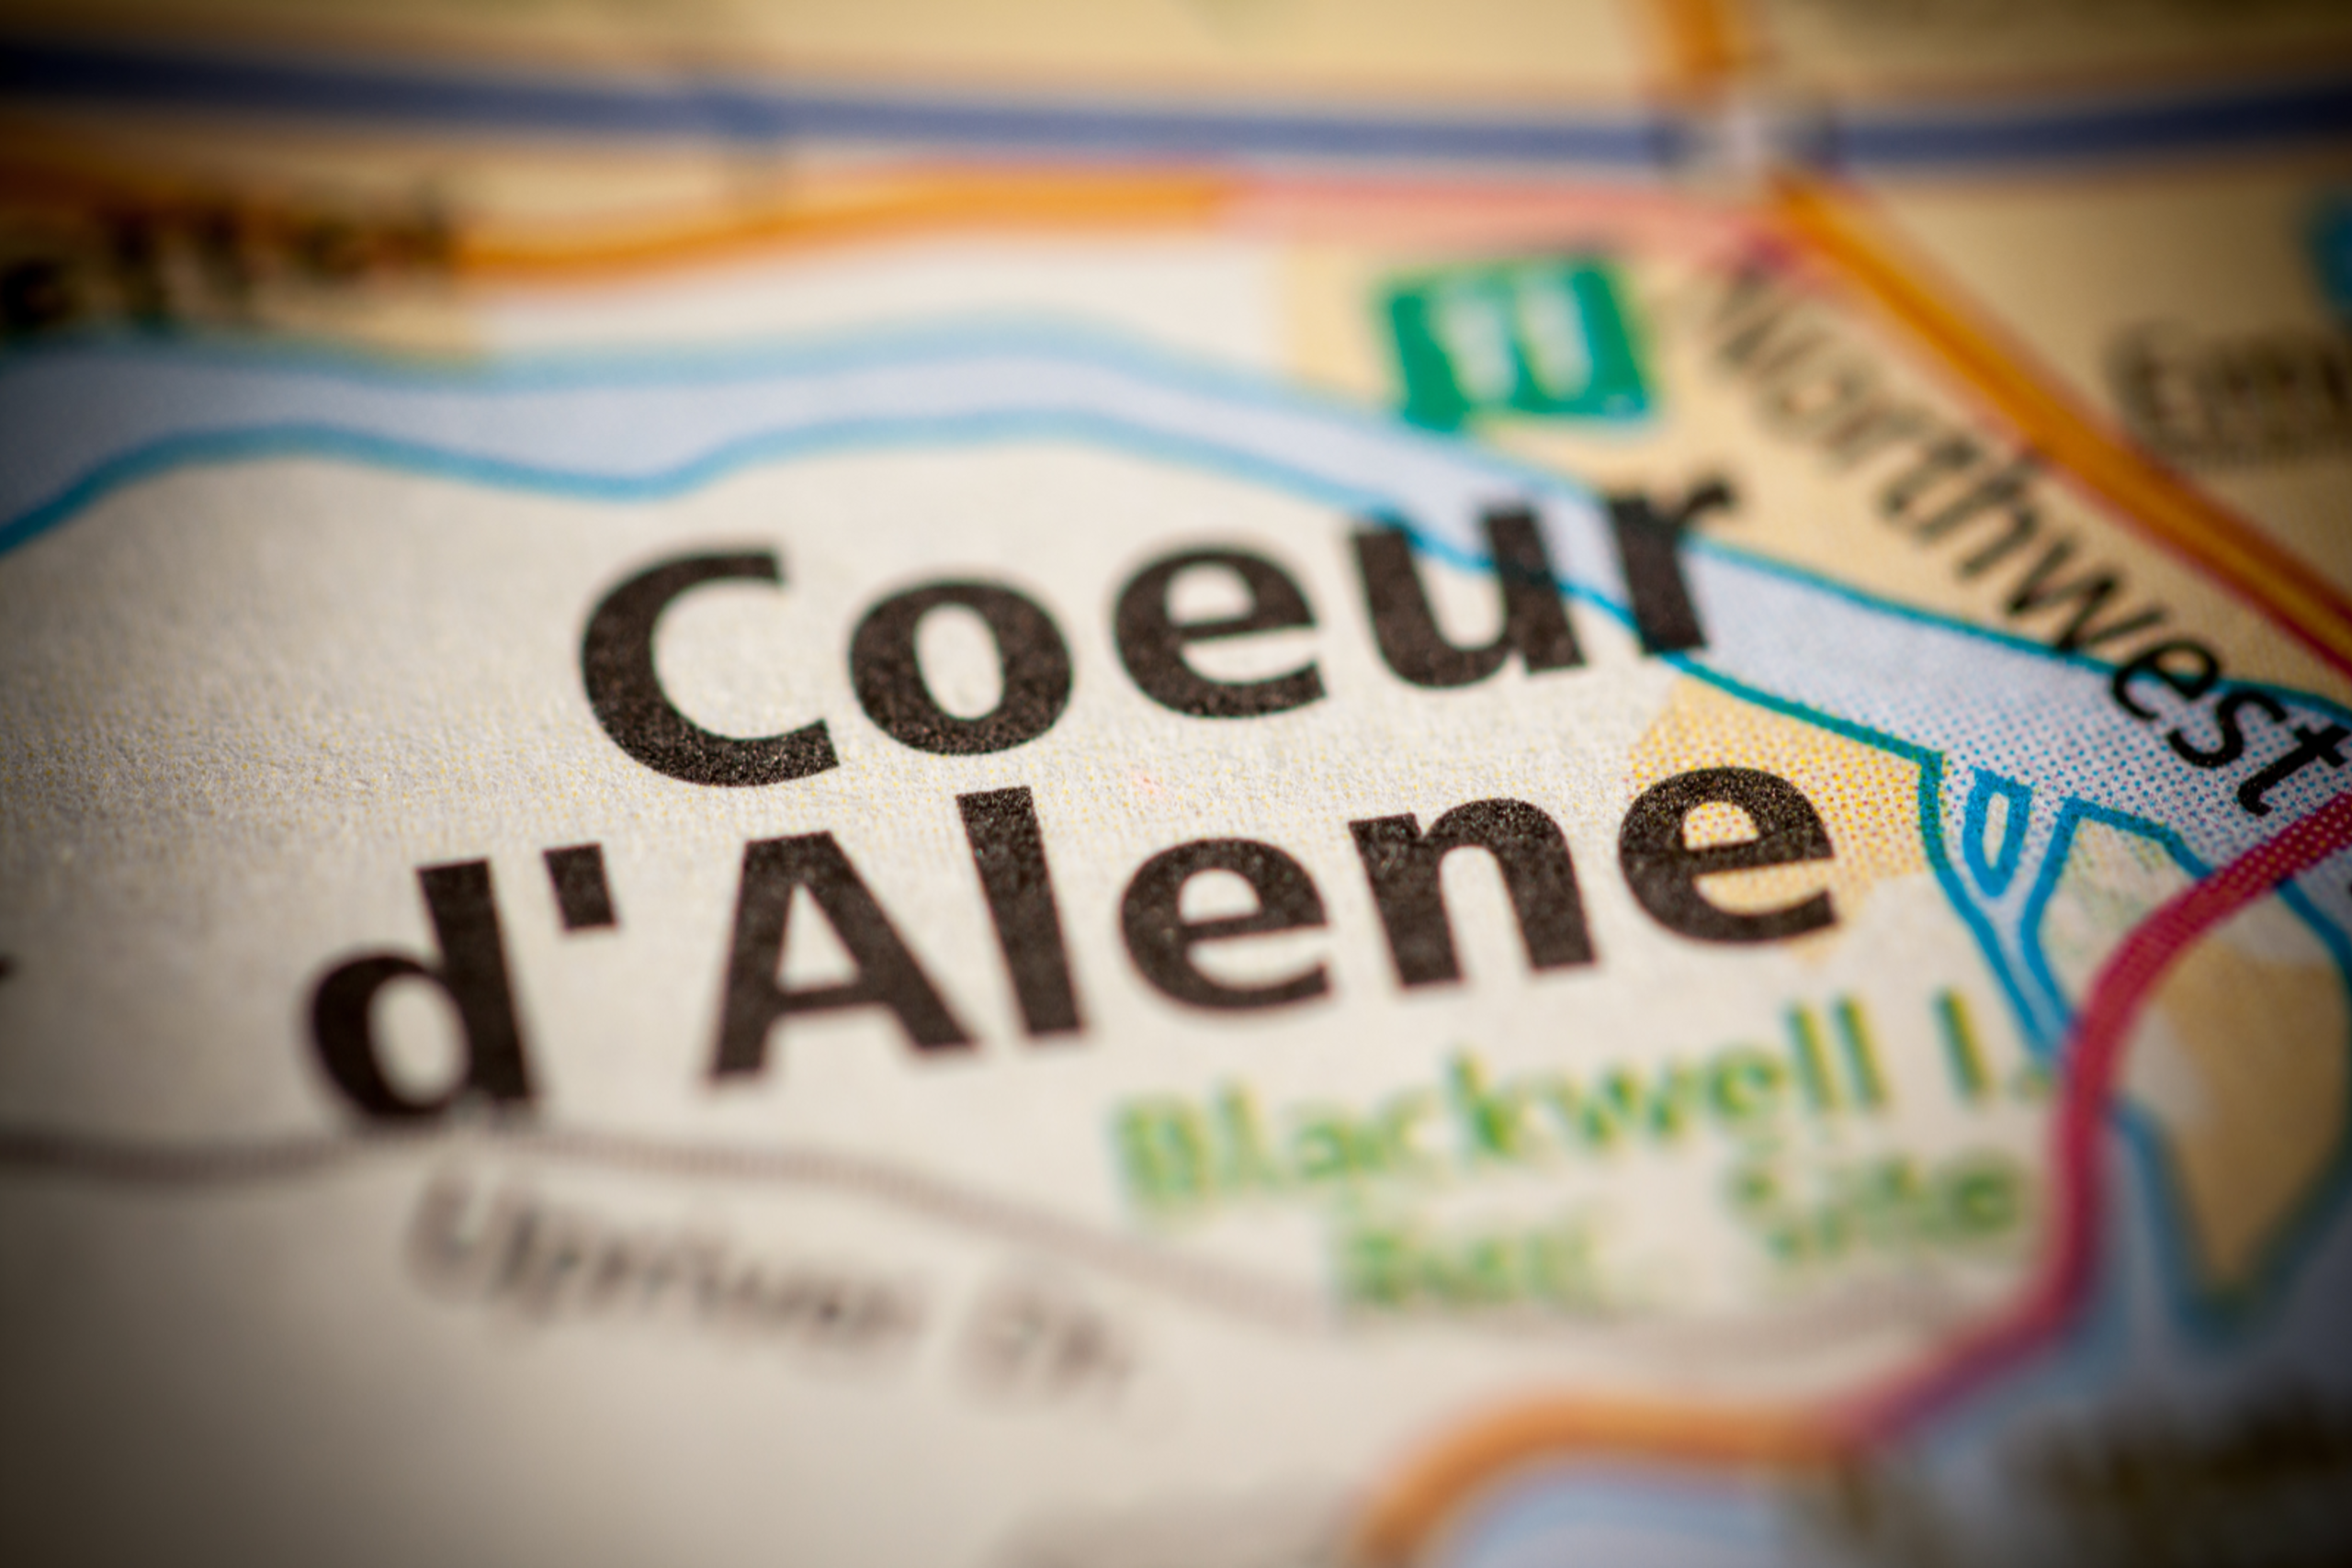 Coeur d'Alene, Idaho - There's no better place to live!